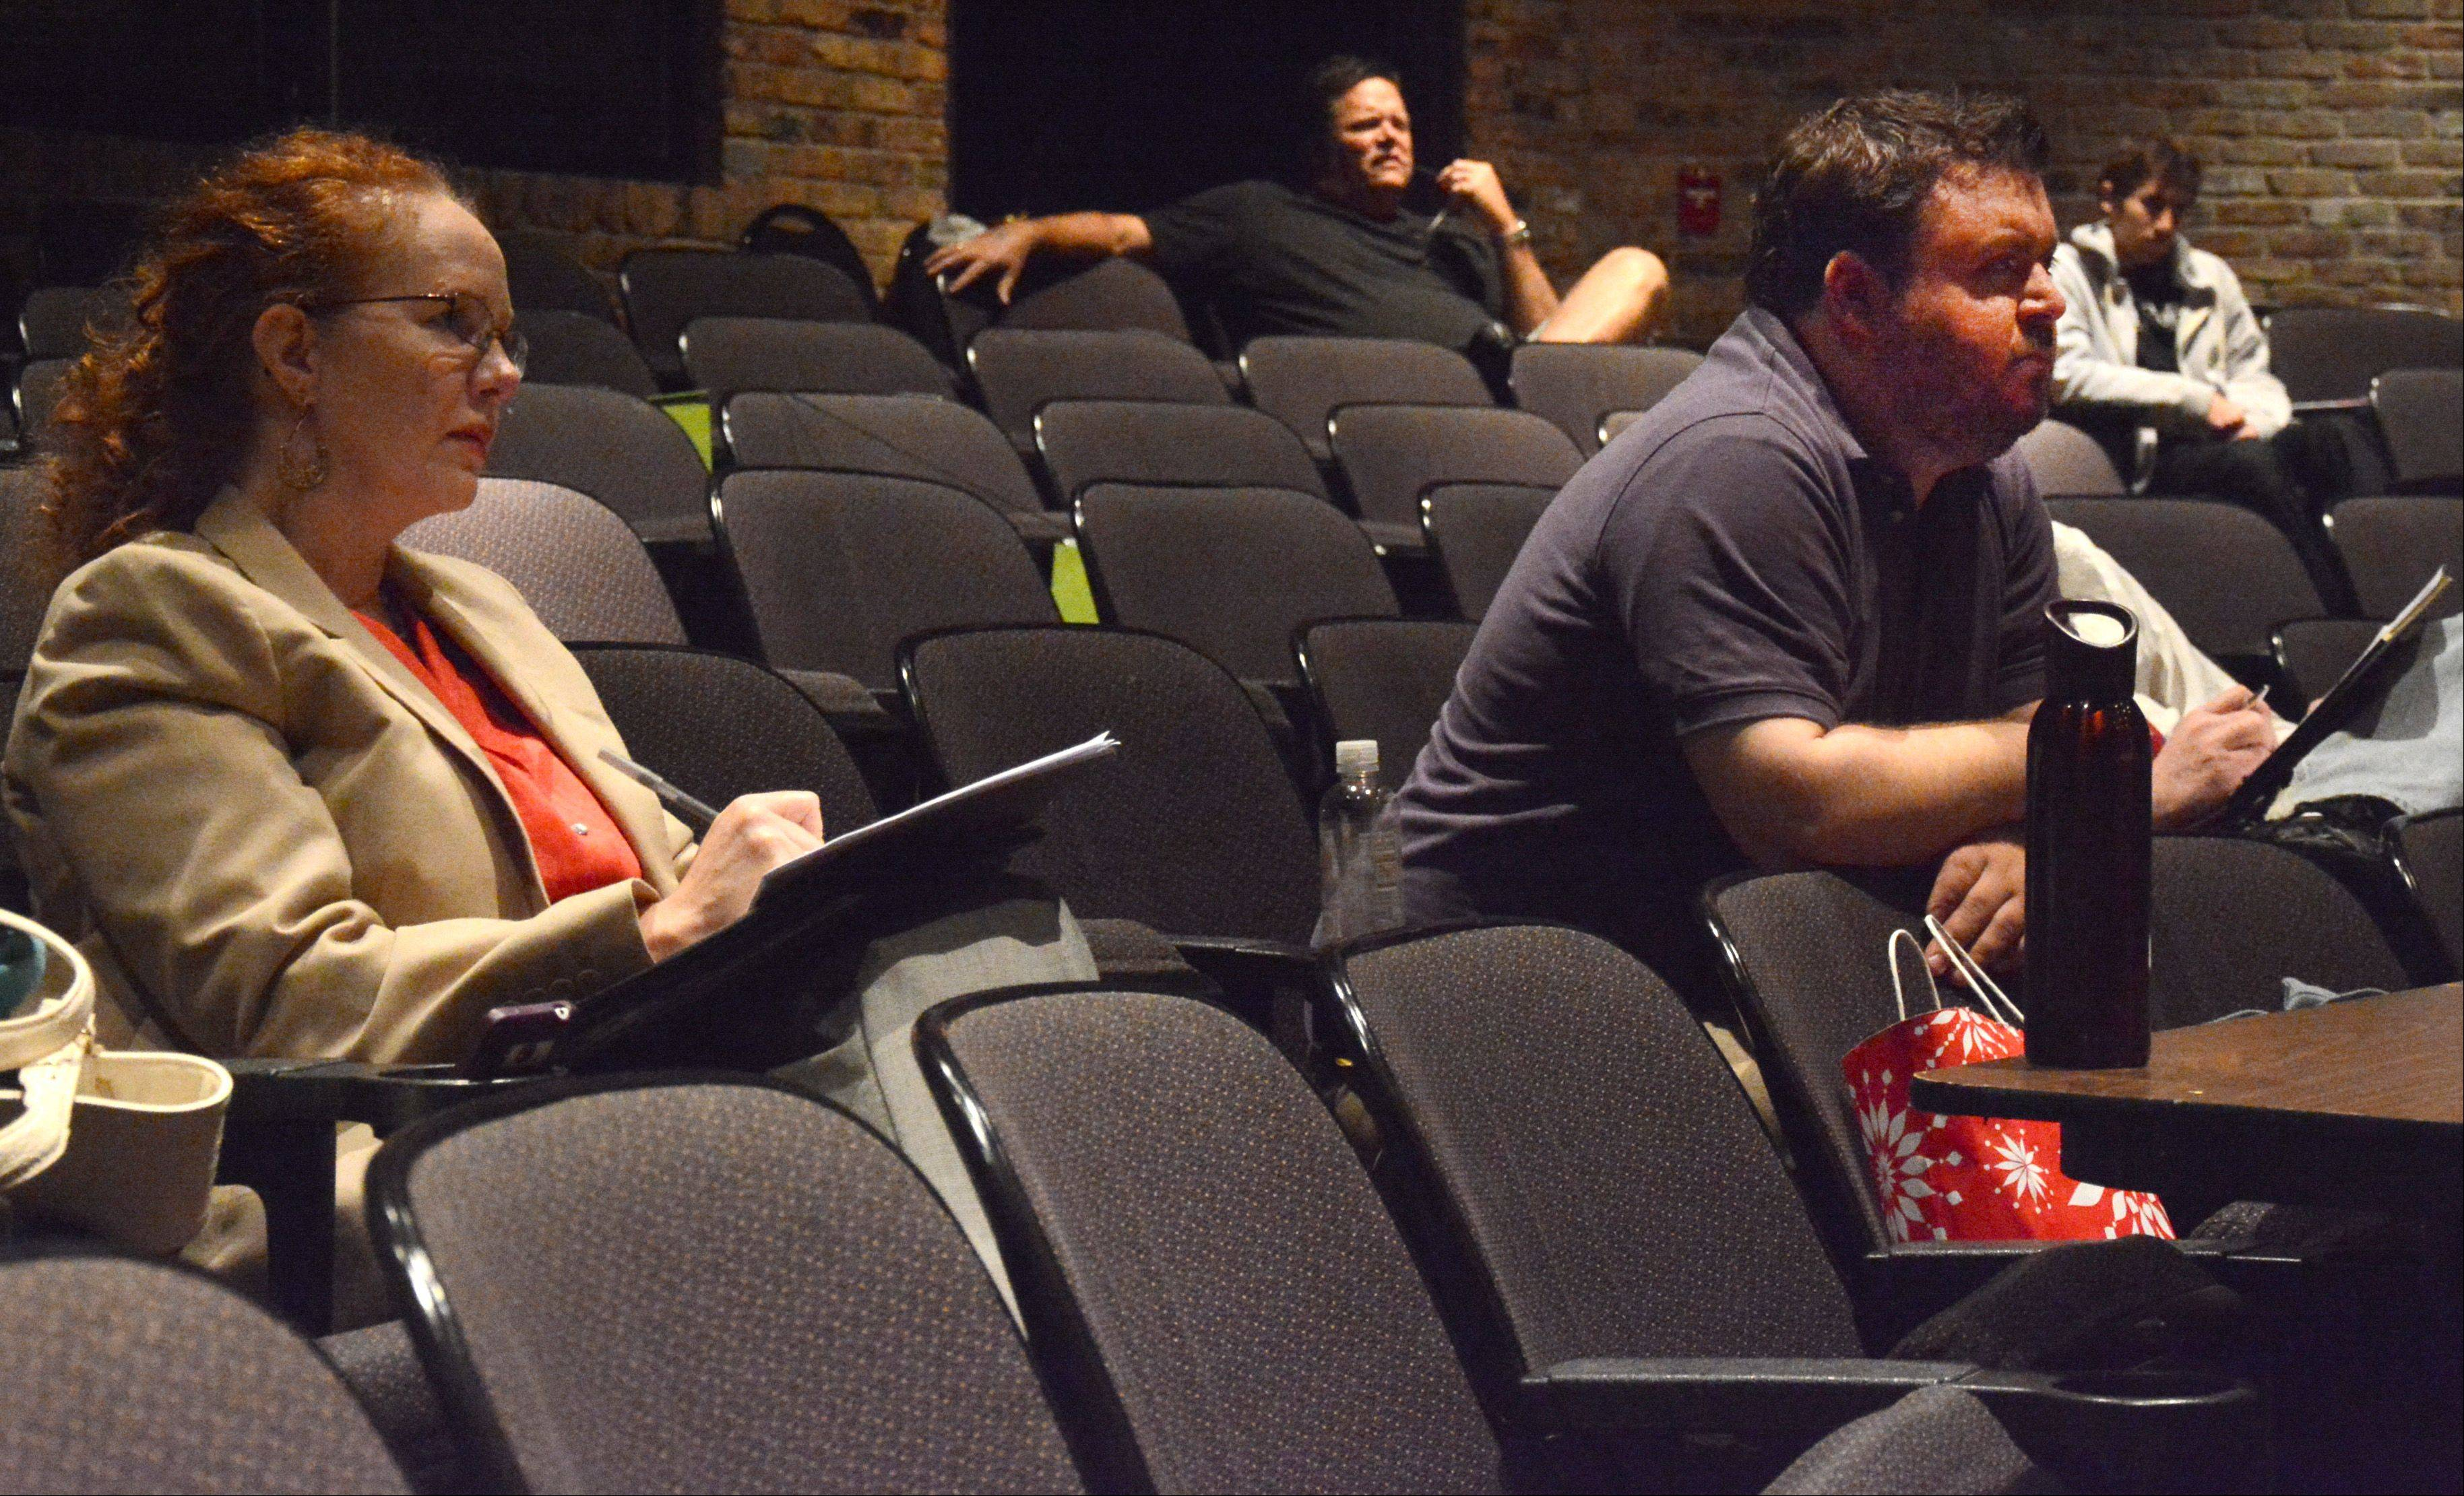 Judges Robin Hughes and Micky York take notes during Amy Powers' audition for Suburban Chicago's Got Talent Friday at the Metropolis Performing Arts Centre in Arlington Heights. Auditions continue today.